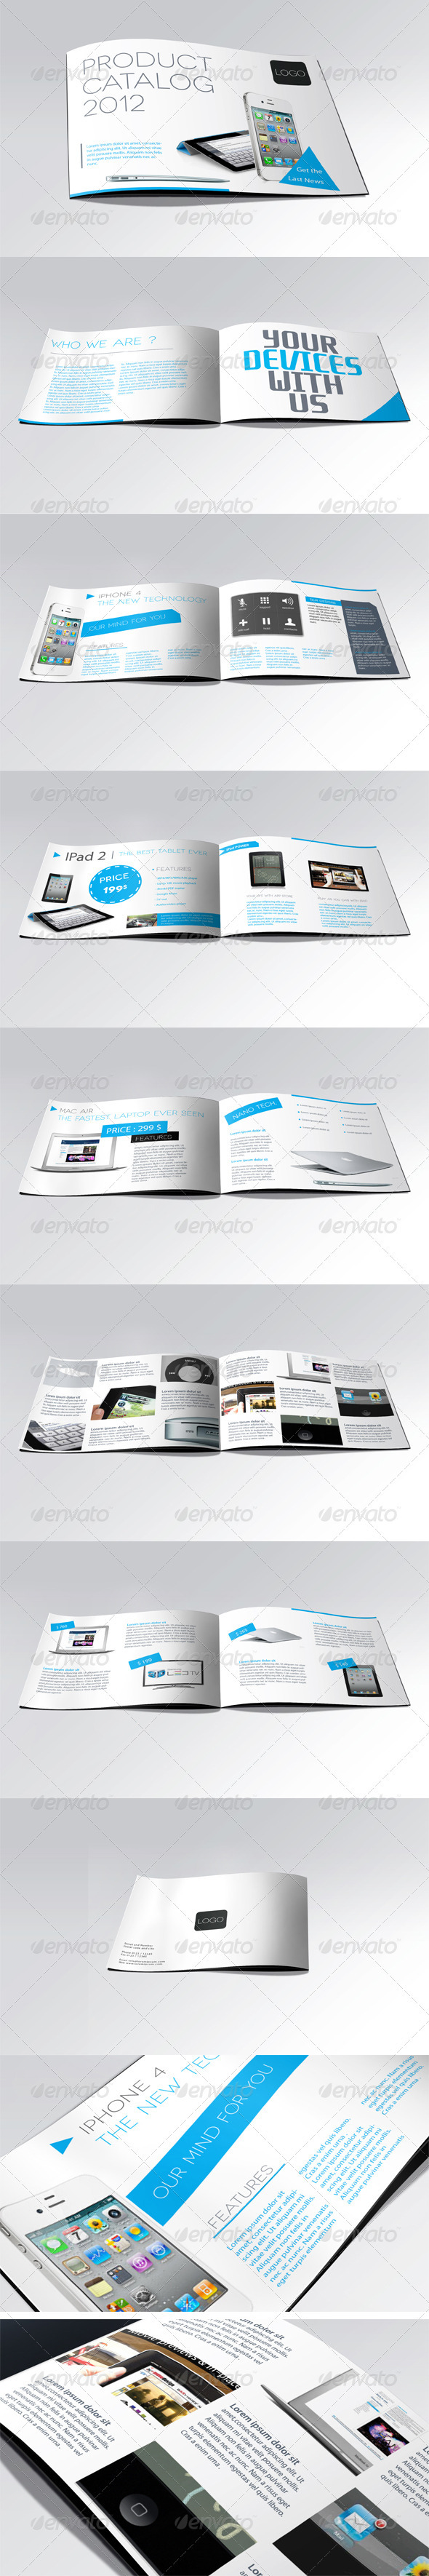 Products Showcase Catalogue - Catalogs Brochures